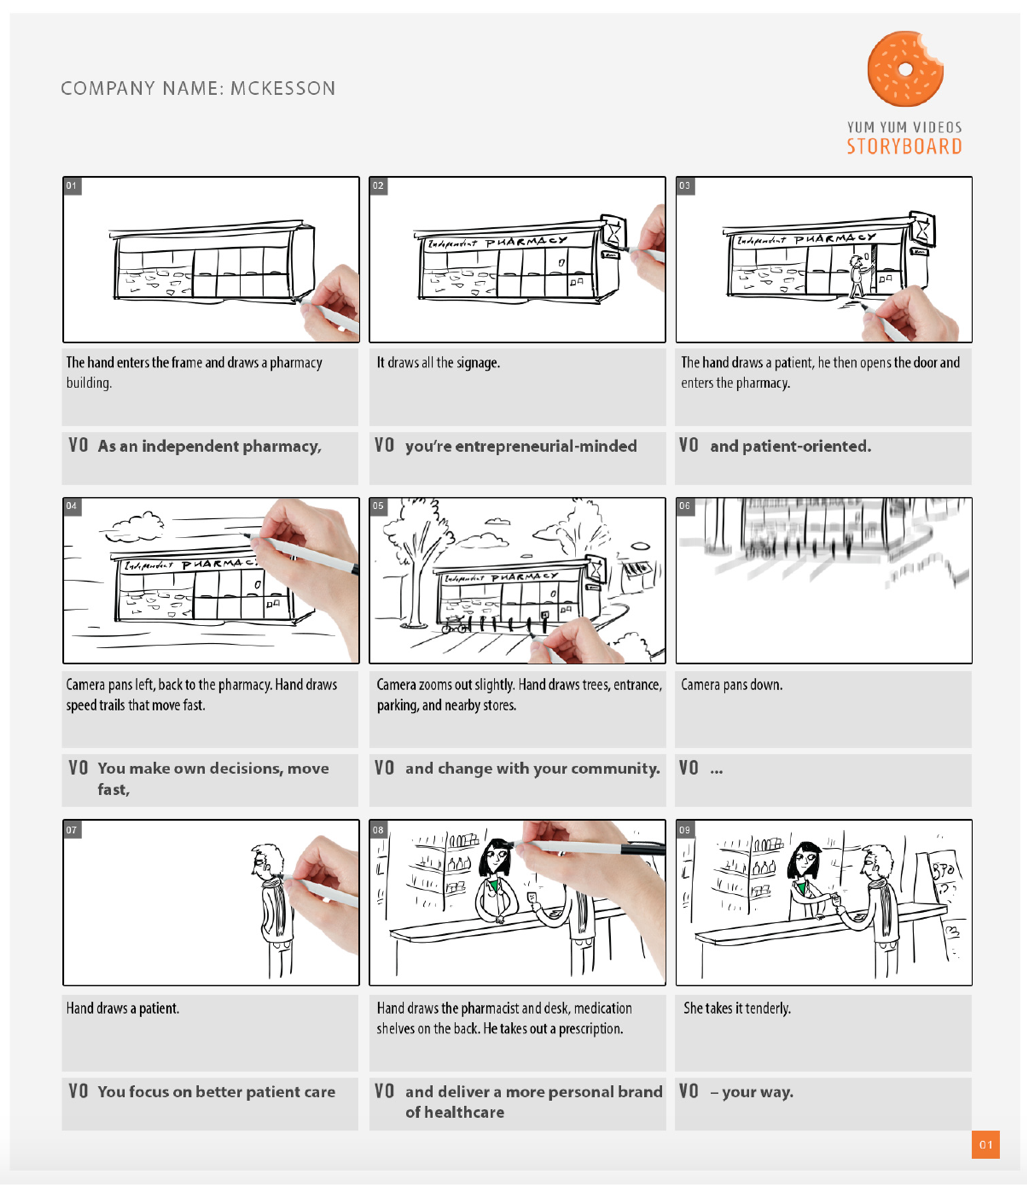 whiteboard video storyboard example